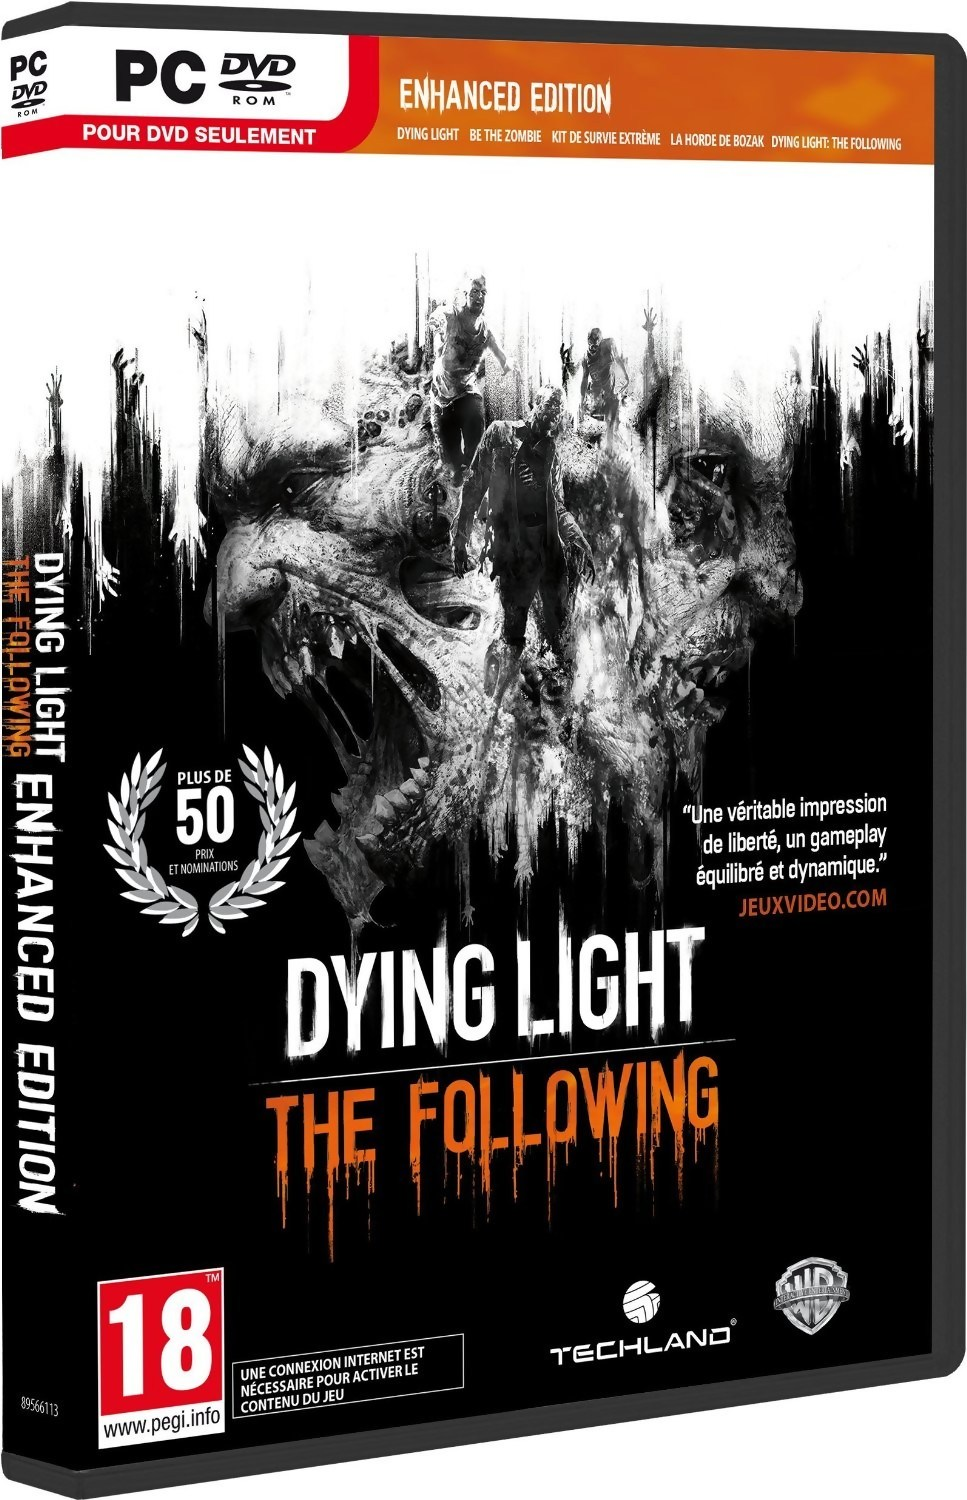 Dying Light The Following Enhanced Edition PC Game